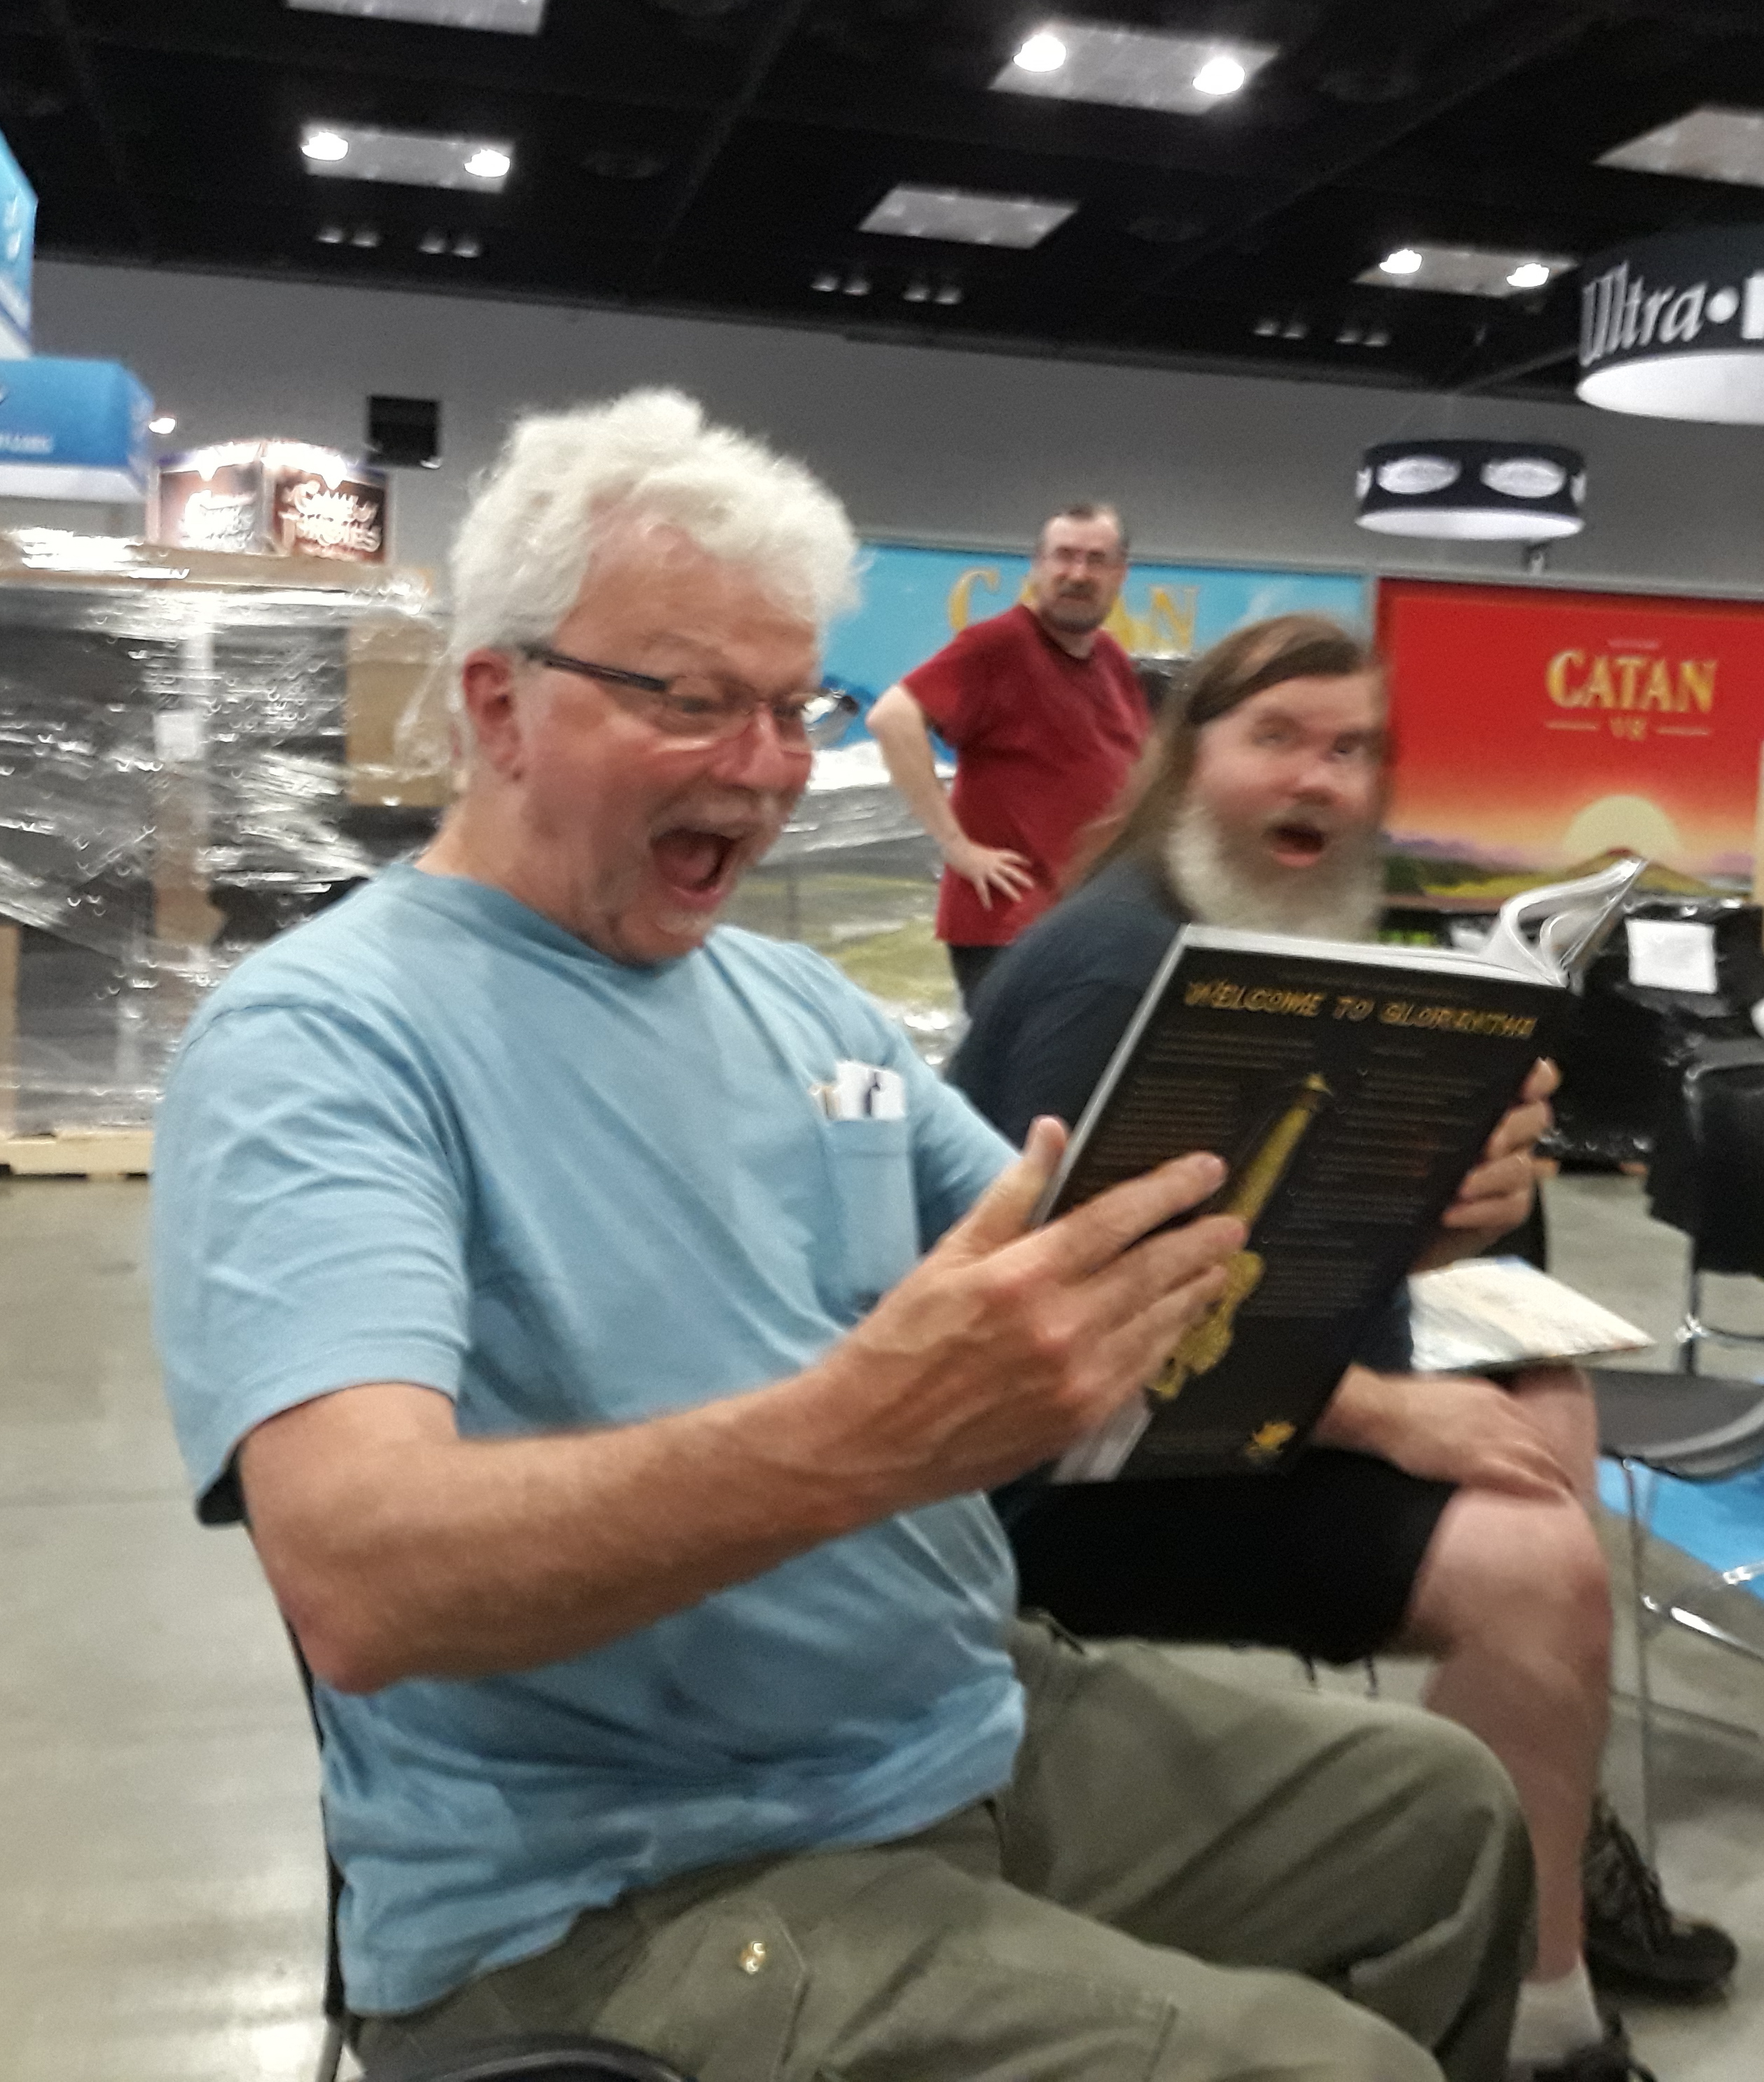 Greg Seeing RQG in Print for the First Time at Gen Con 2018